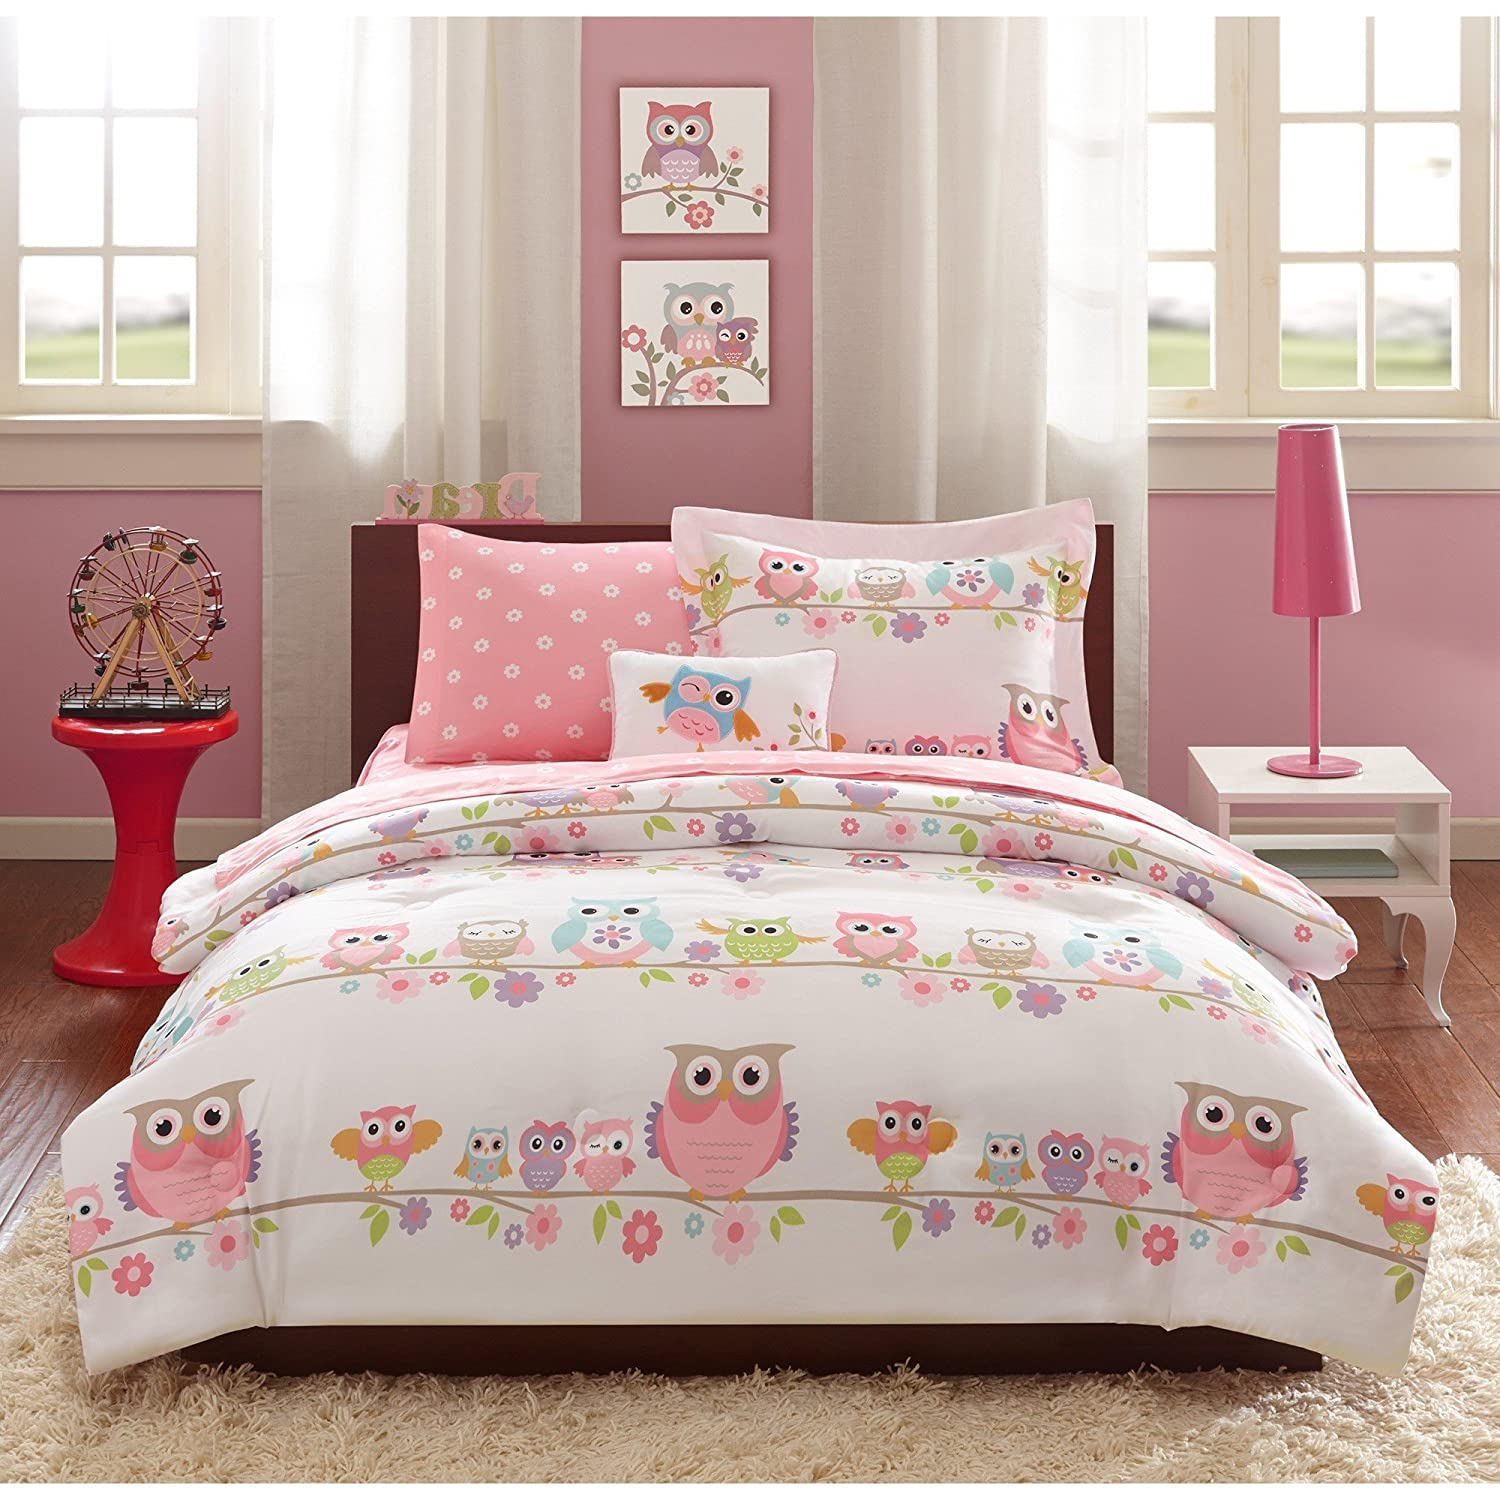 6 Piece Girls Pink White Green Animal Print Pattern Comforter Twin Set With Sheets, Light Pink Sky Blue Purple Fun Owl Little Birds Daisy Flower, Adorable Multi Kids Bedding Contemporary, Polyester